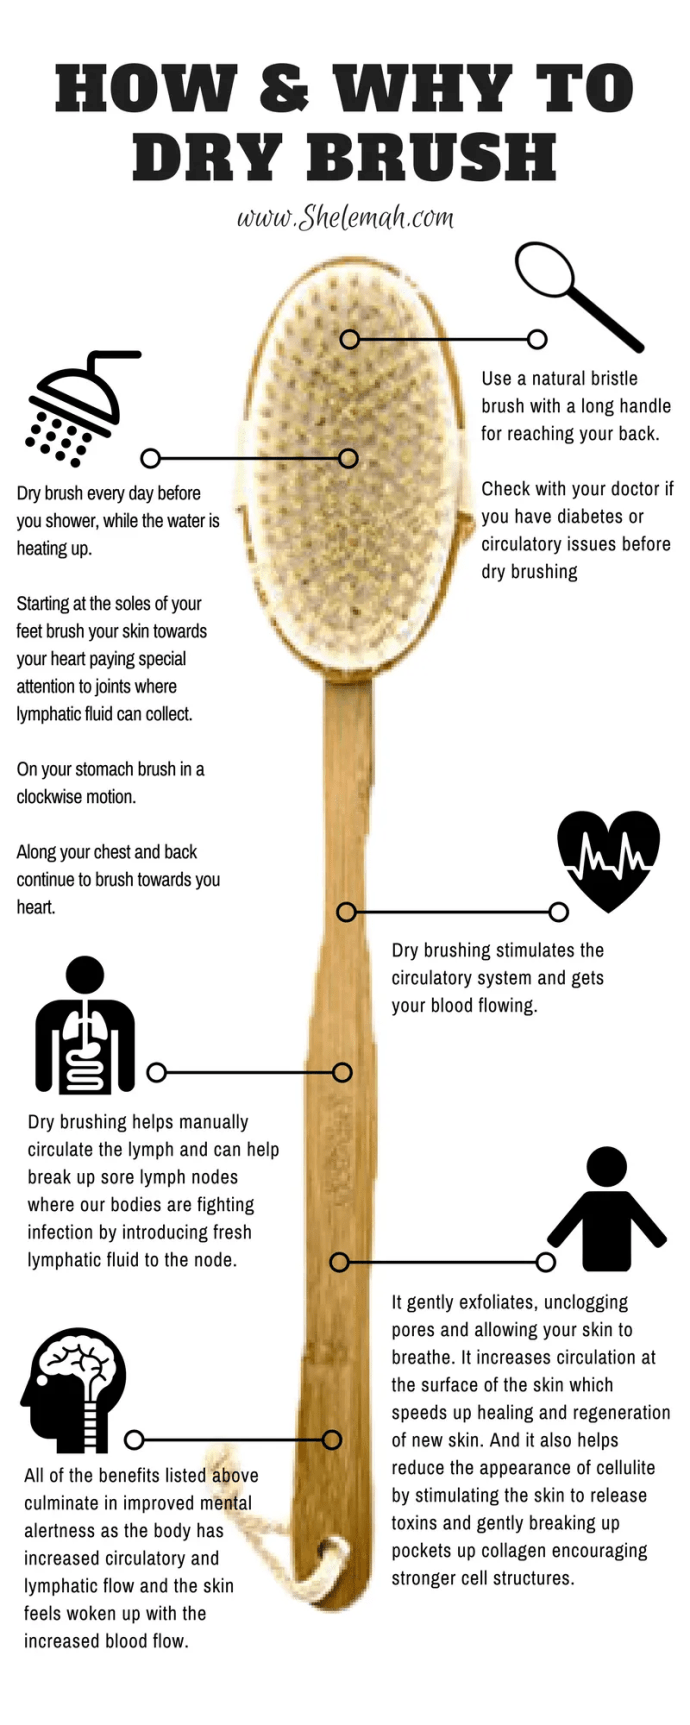 How and why to dry brush: learn all about how this simple health practice can improve your skin, lymphatic health, mental alertness, and more! #drybrushing #skinhealth